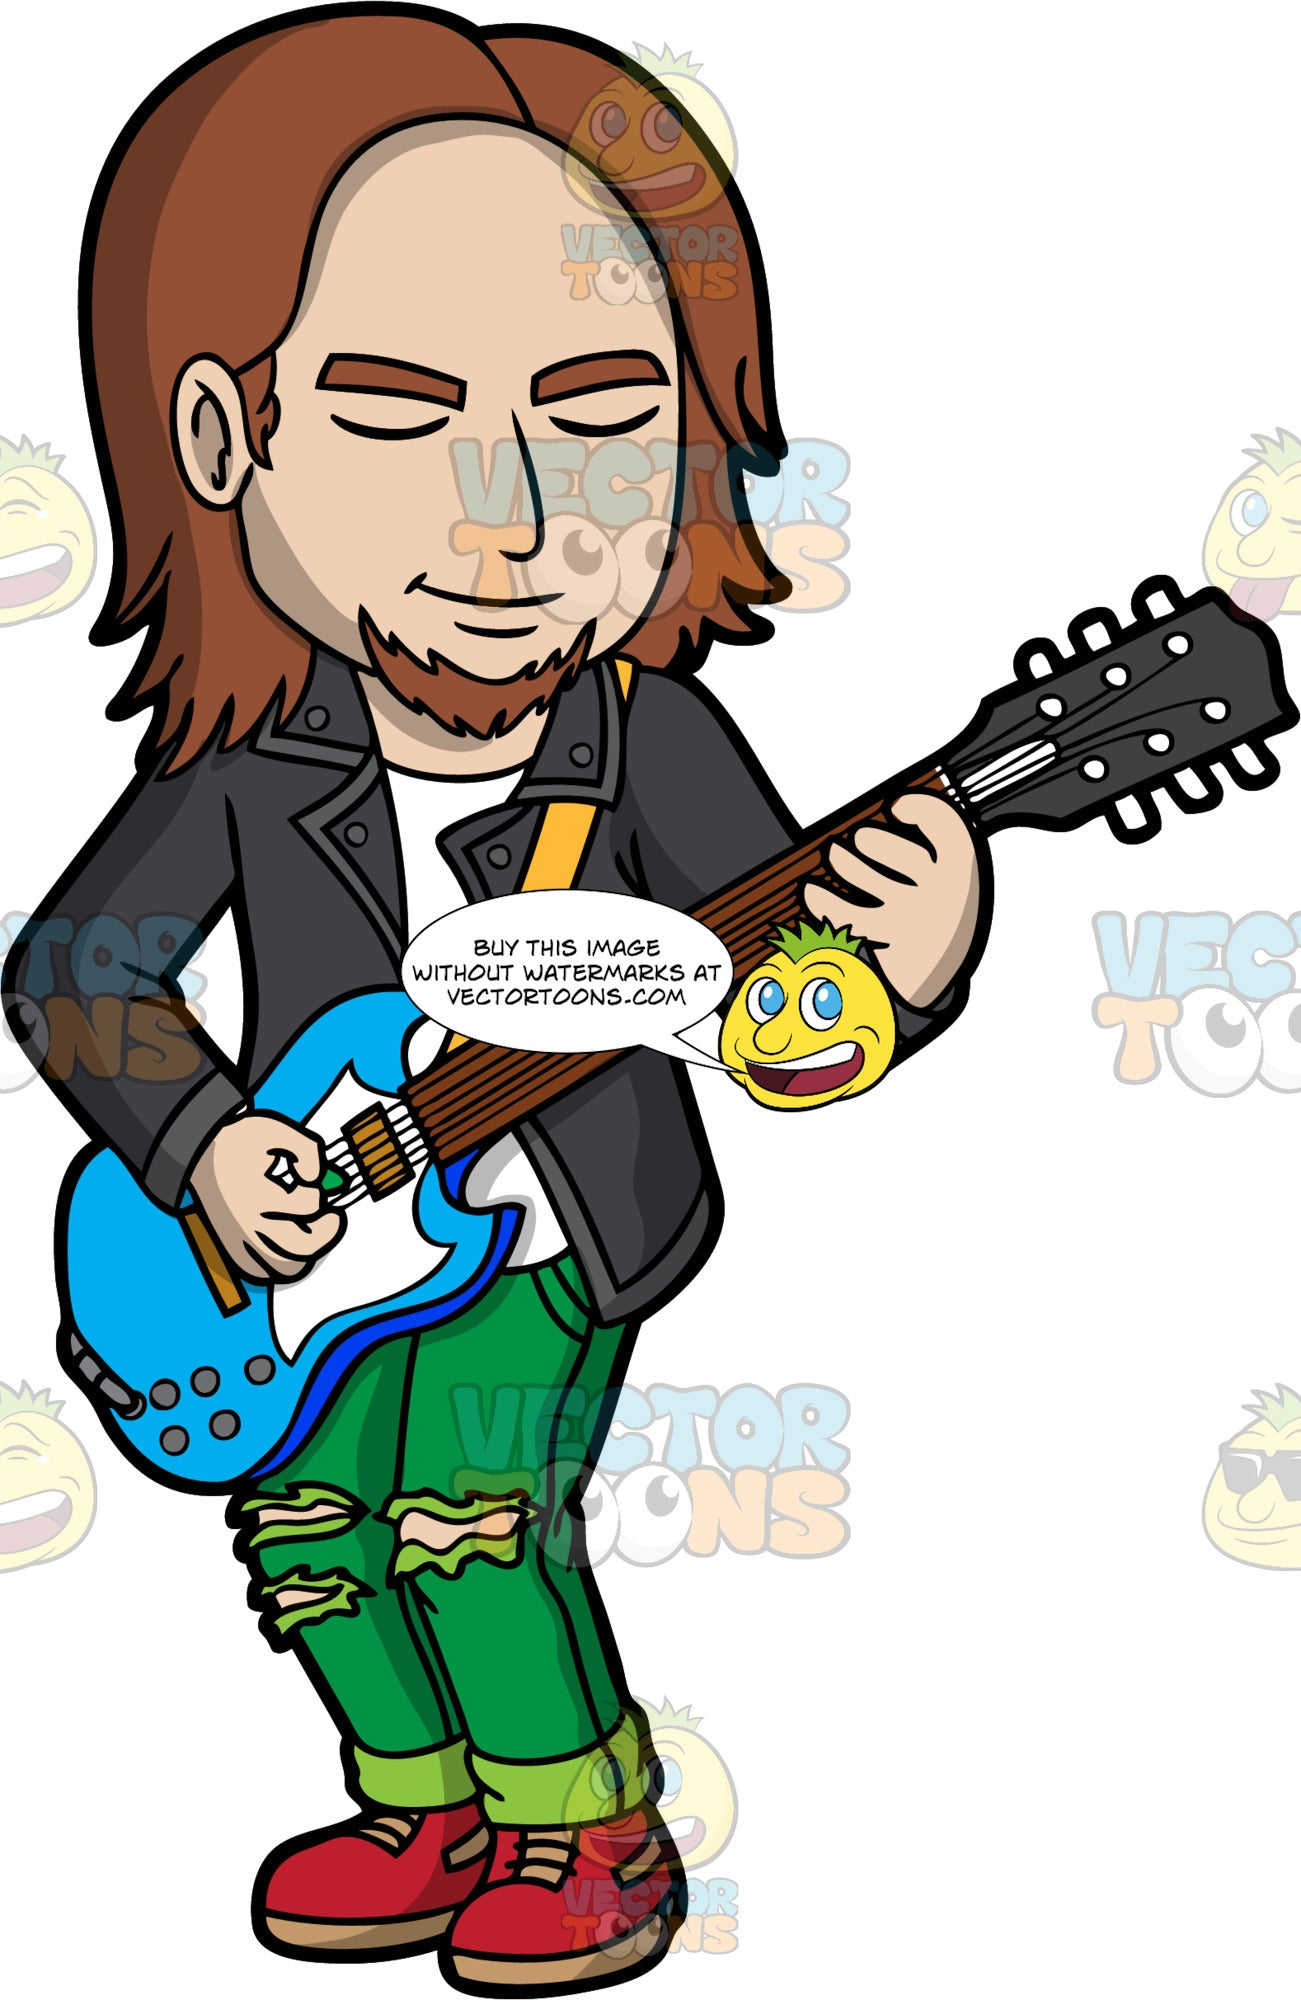 A Cool Man Playing An Electric Guitar. A man with shaggy brown hair and a goatee, wearing ripped green pants, a black leather jacket over a white shirt, and red shoes, closes his eyes as he plays a song on a blue electric guitar